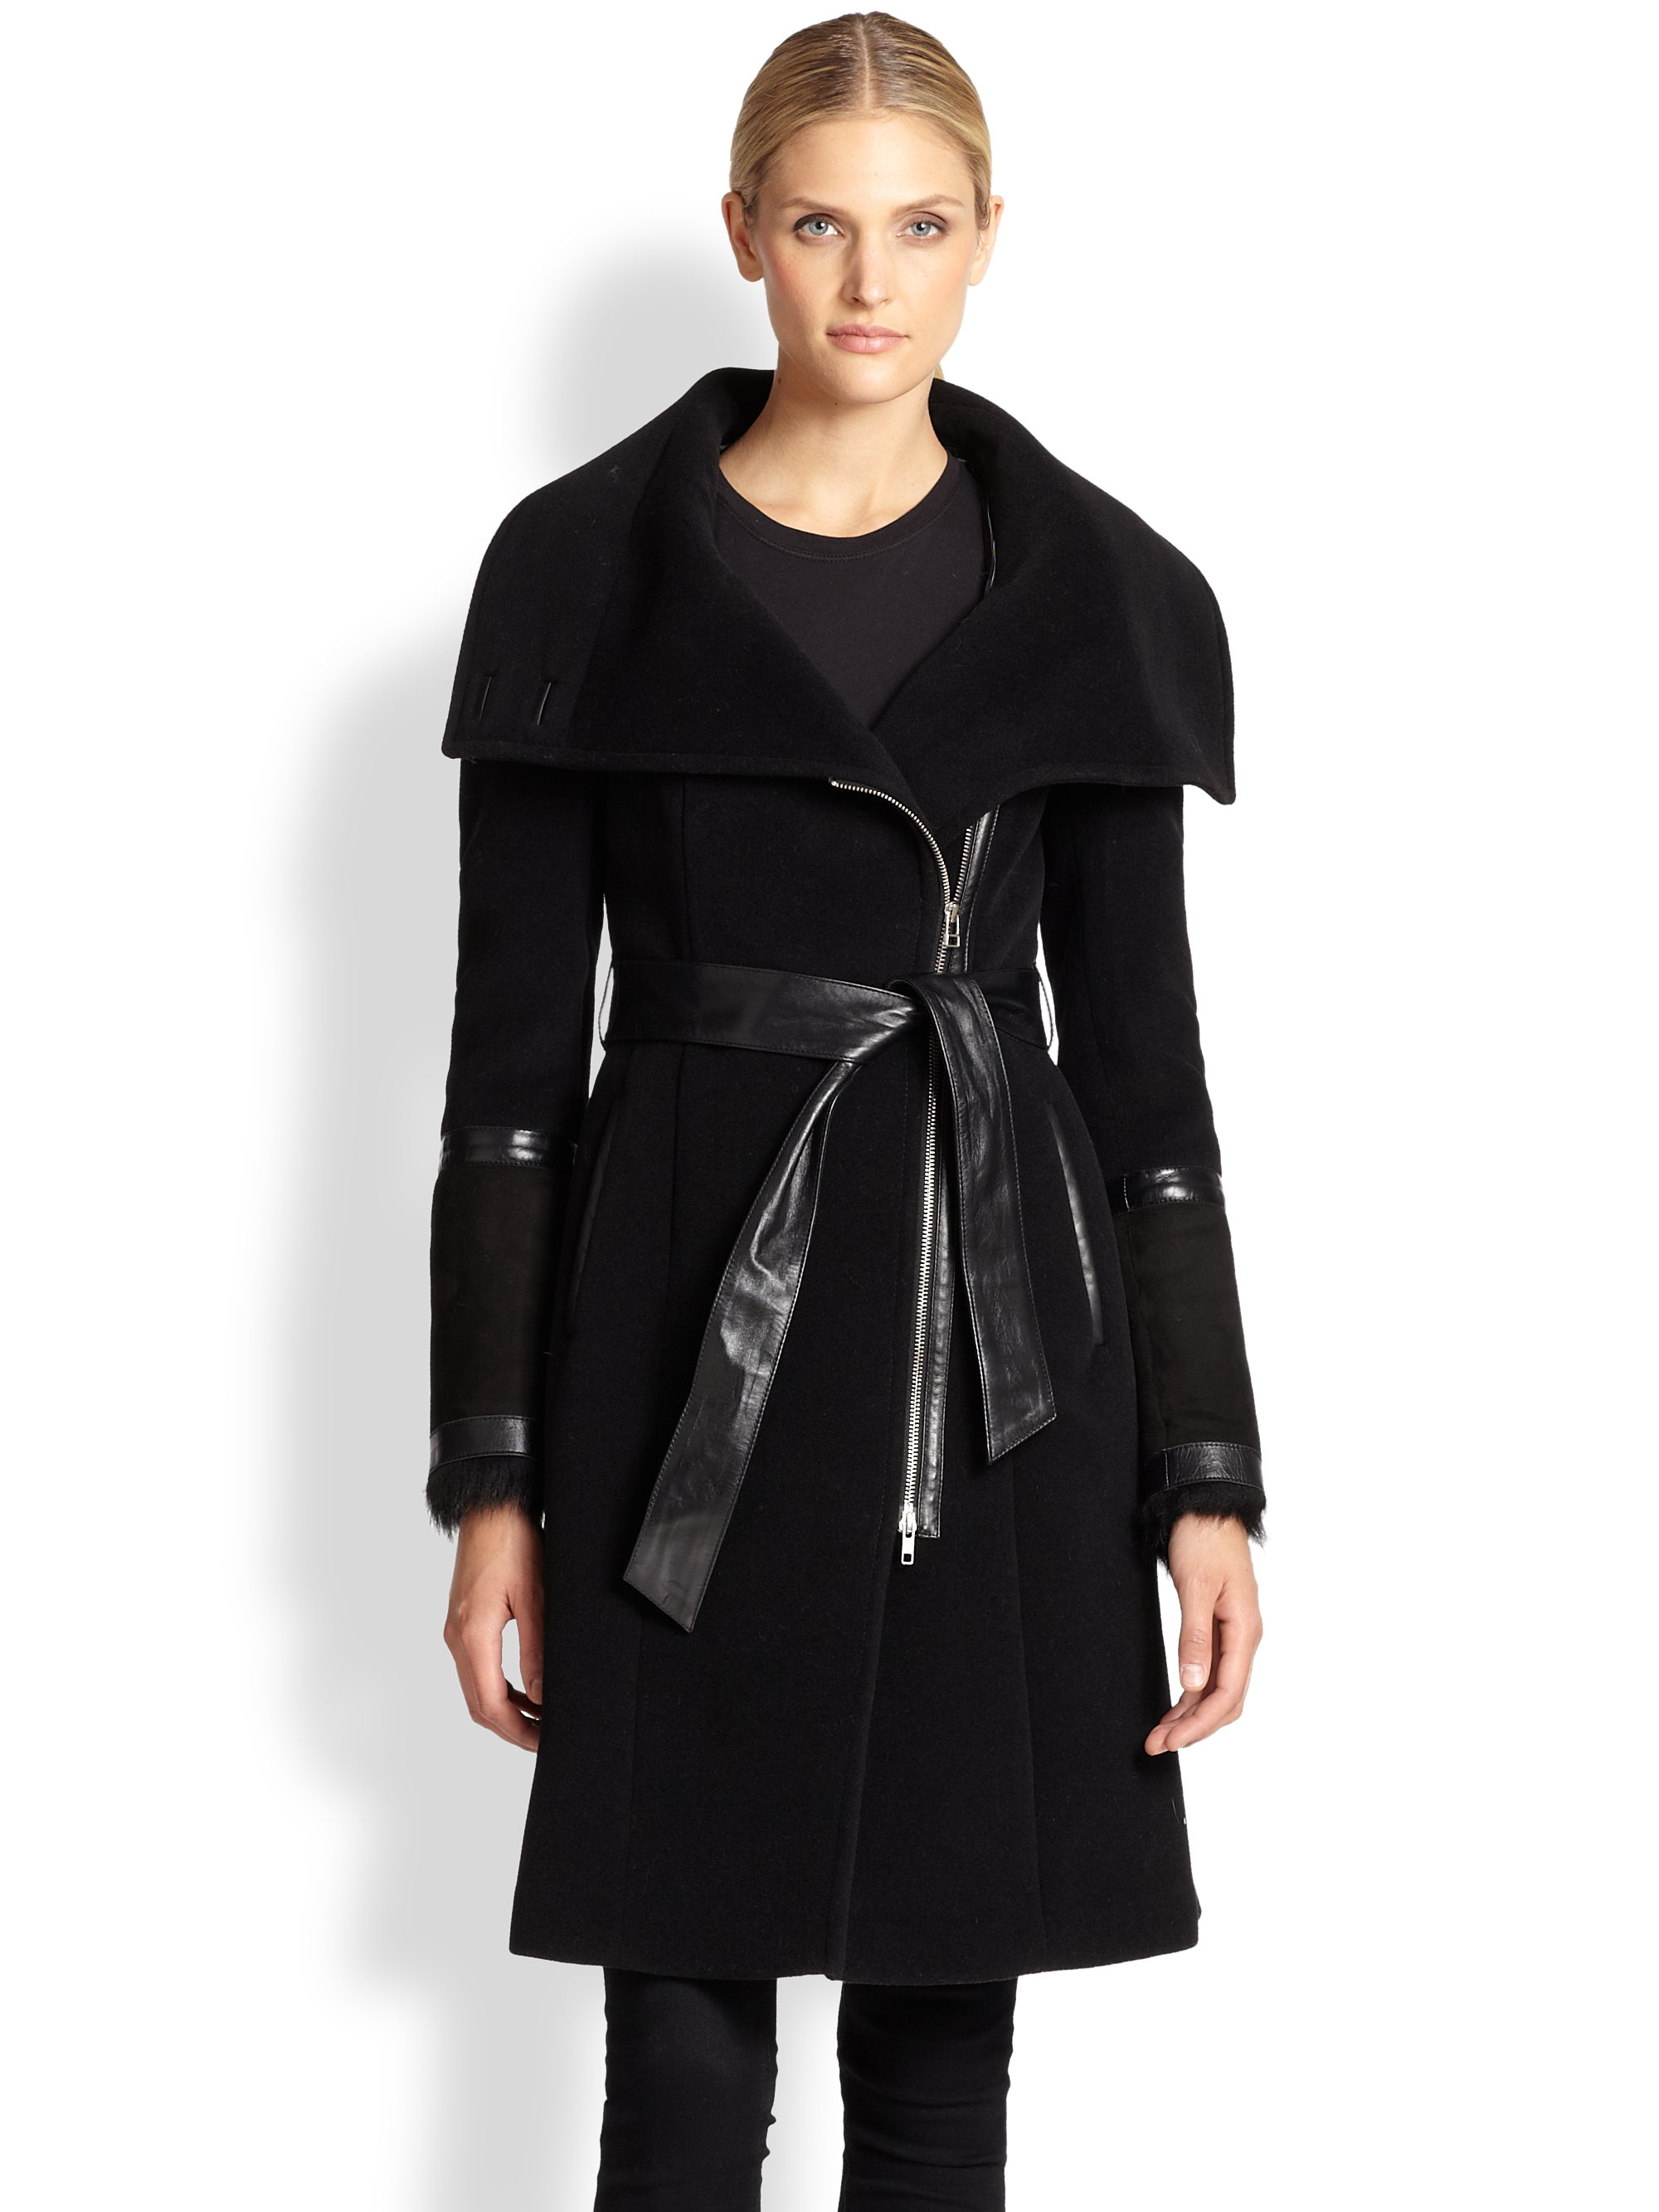 Leather Trench Coats For Women Tradingbasis